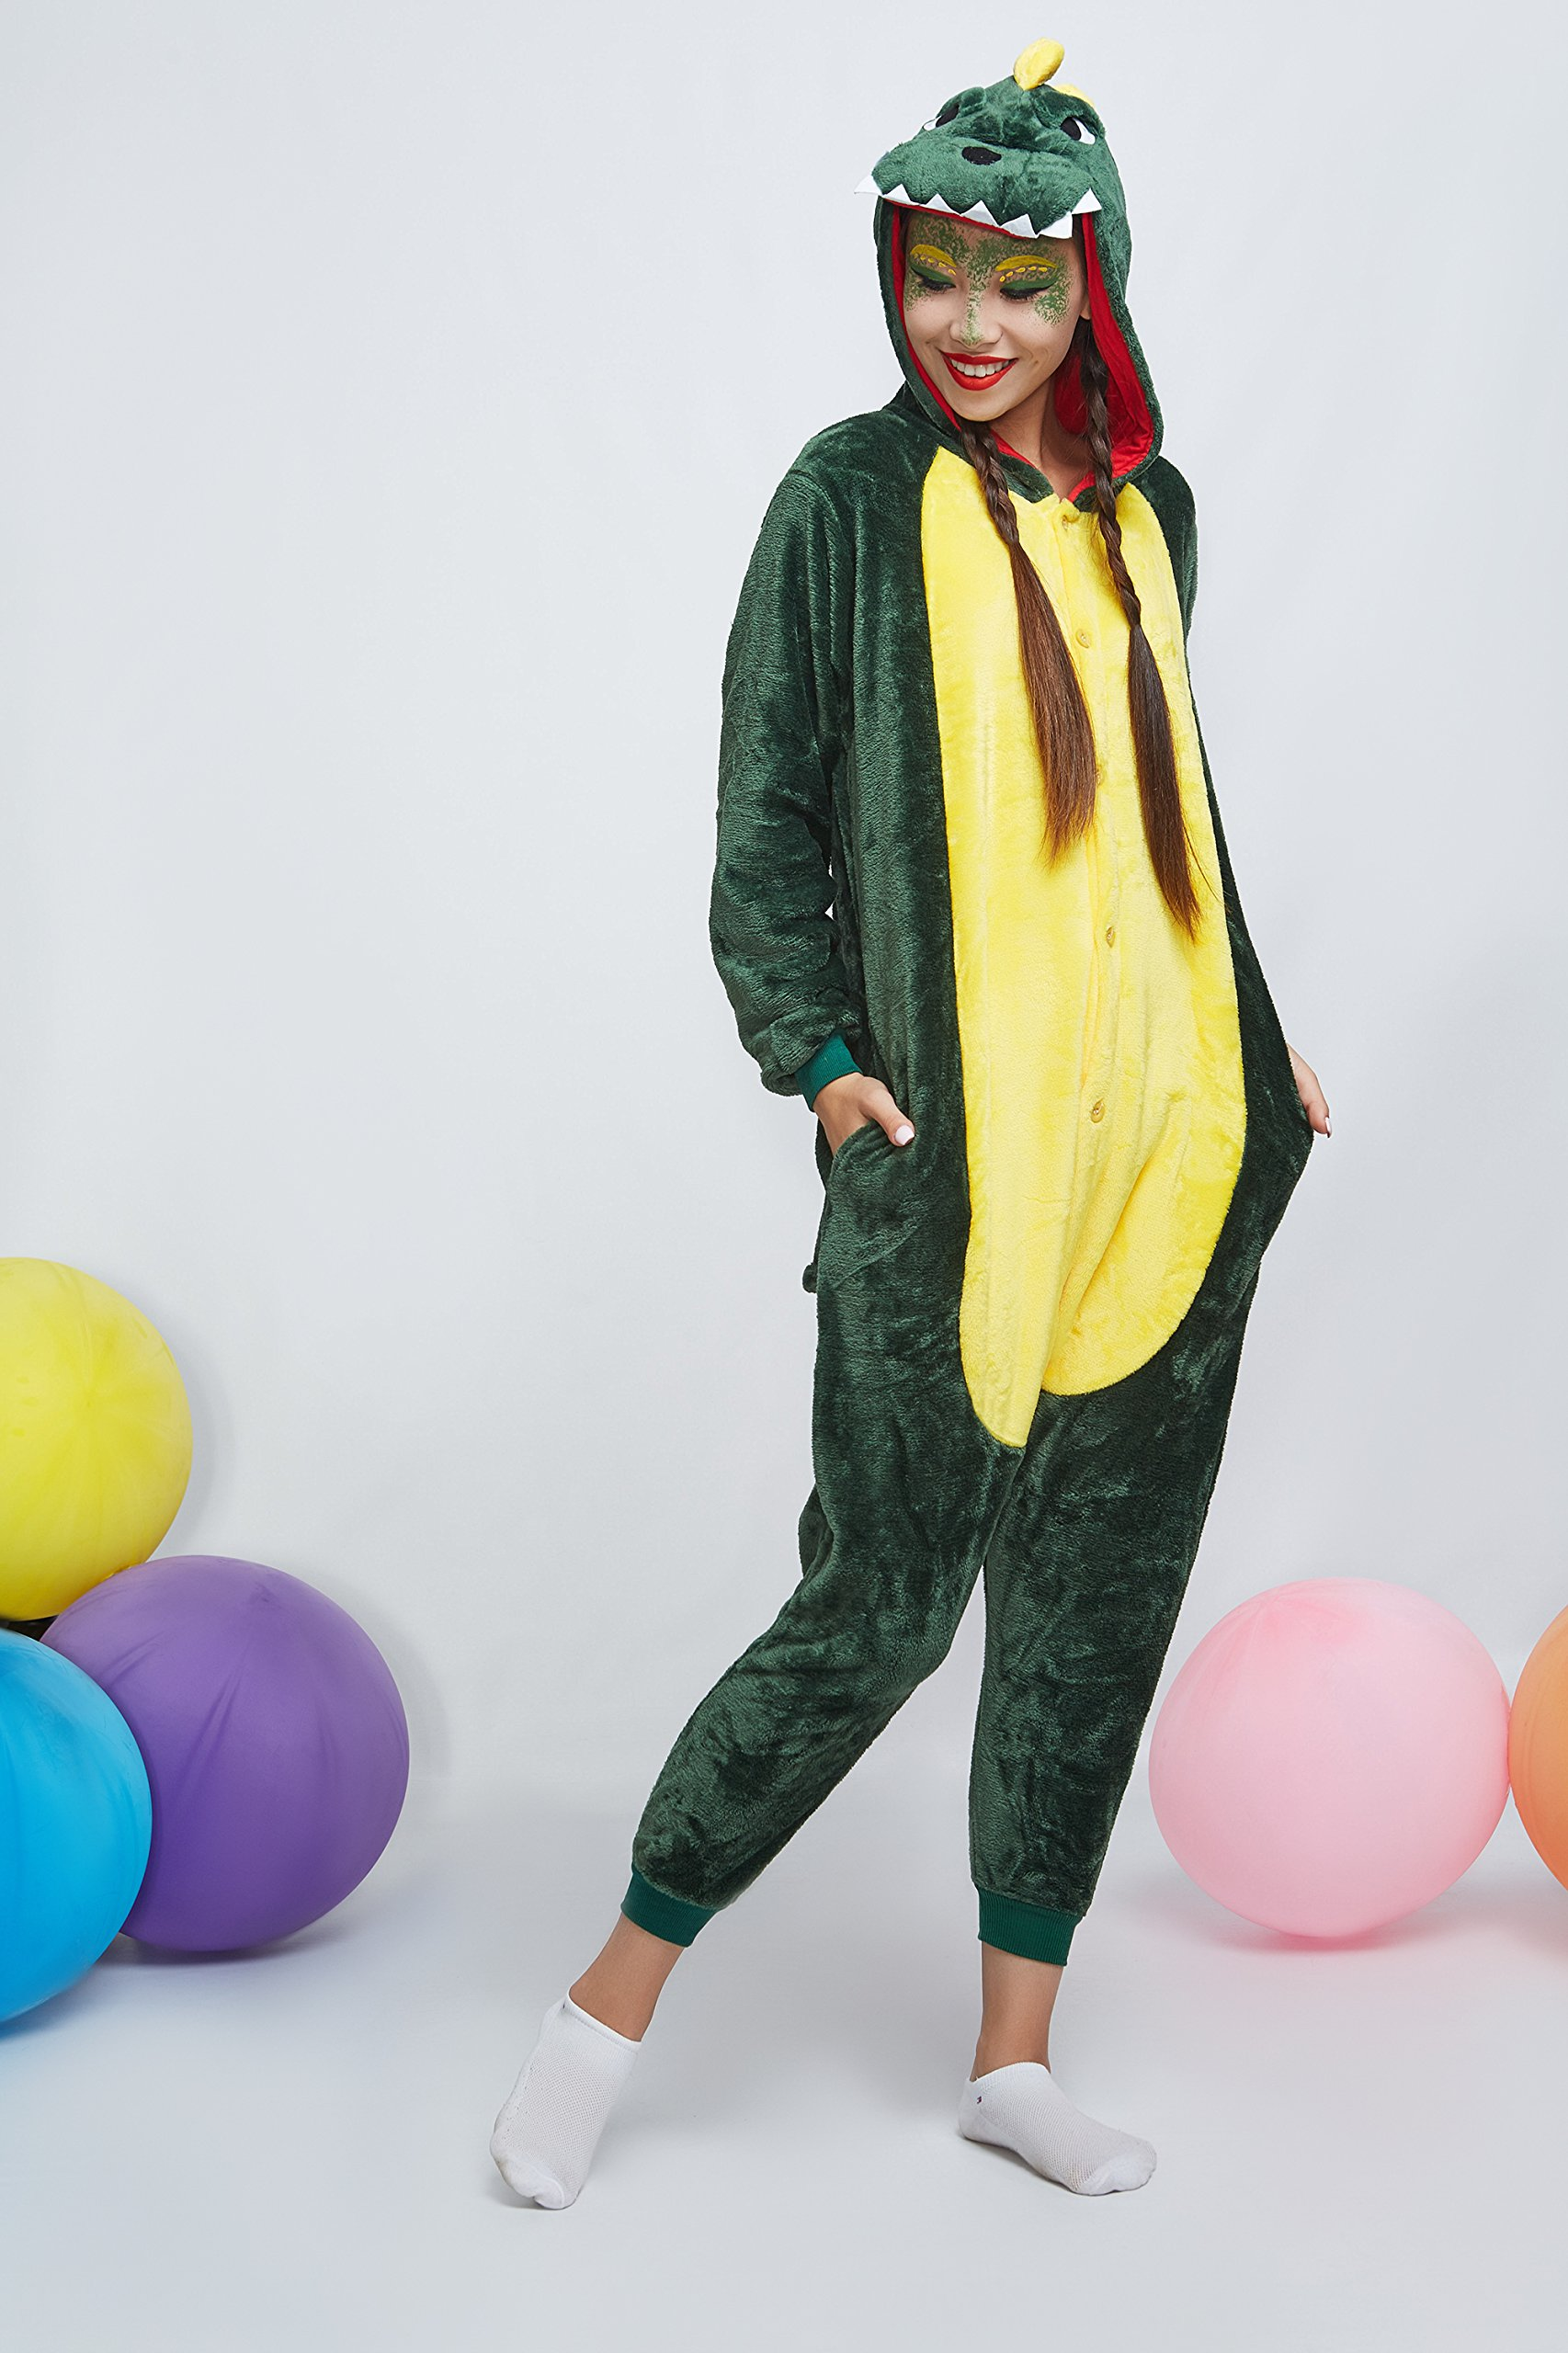 Adult Dragon Kigurumi Animal Onesie Pajamas Plush Onsie One Piece Cosplay Costume (Small, Green) by Nothing But Love (Image #3)